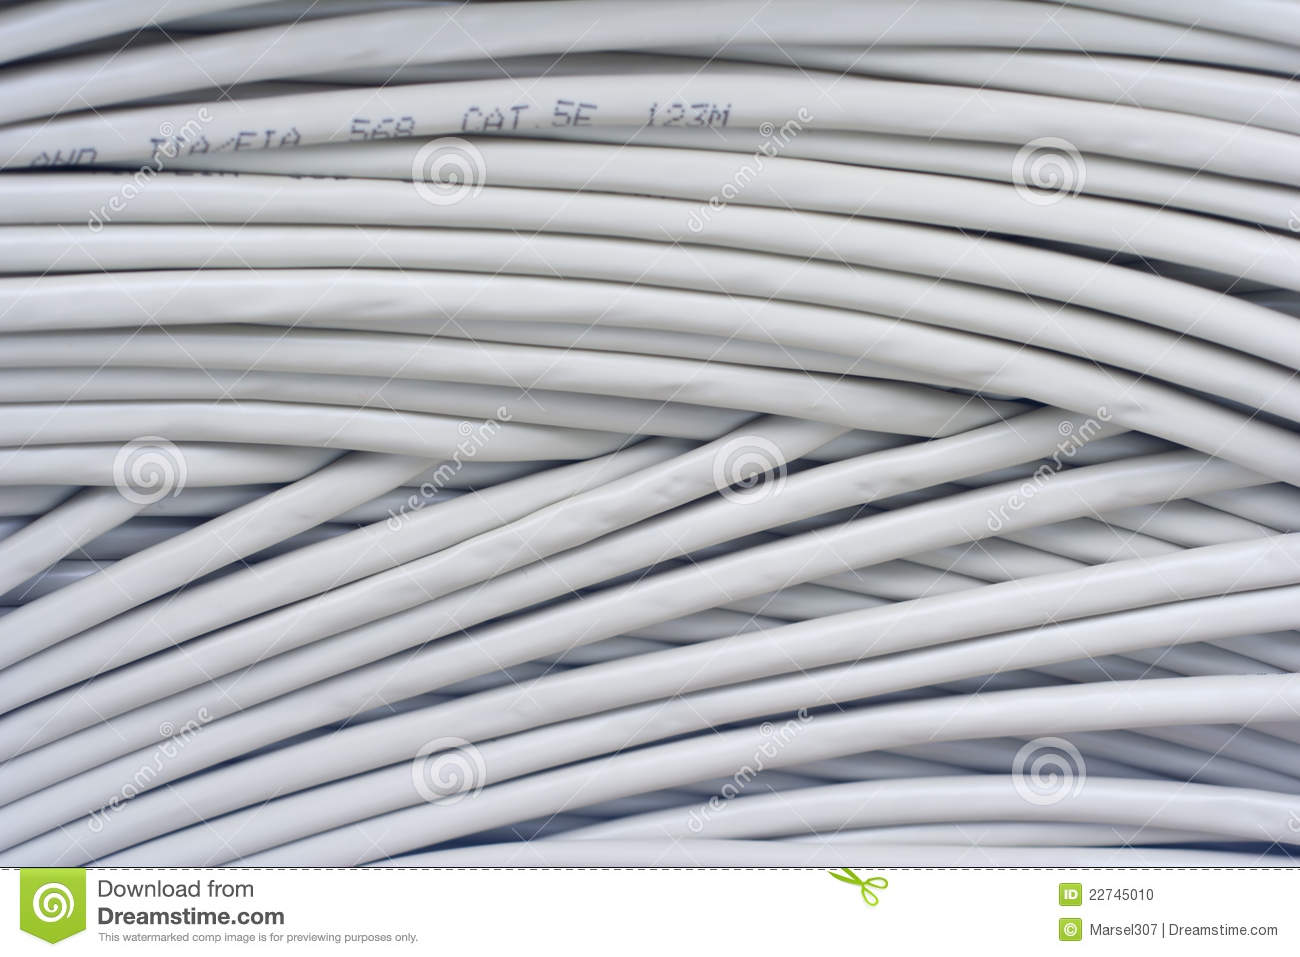 Cable stock photo. Image of hank, wiring, network, wires - 22745010